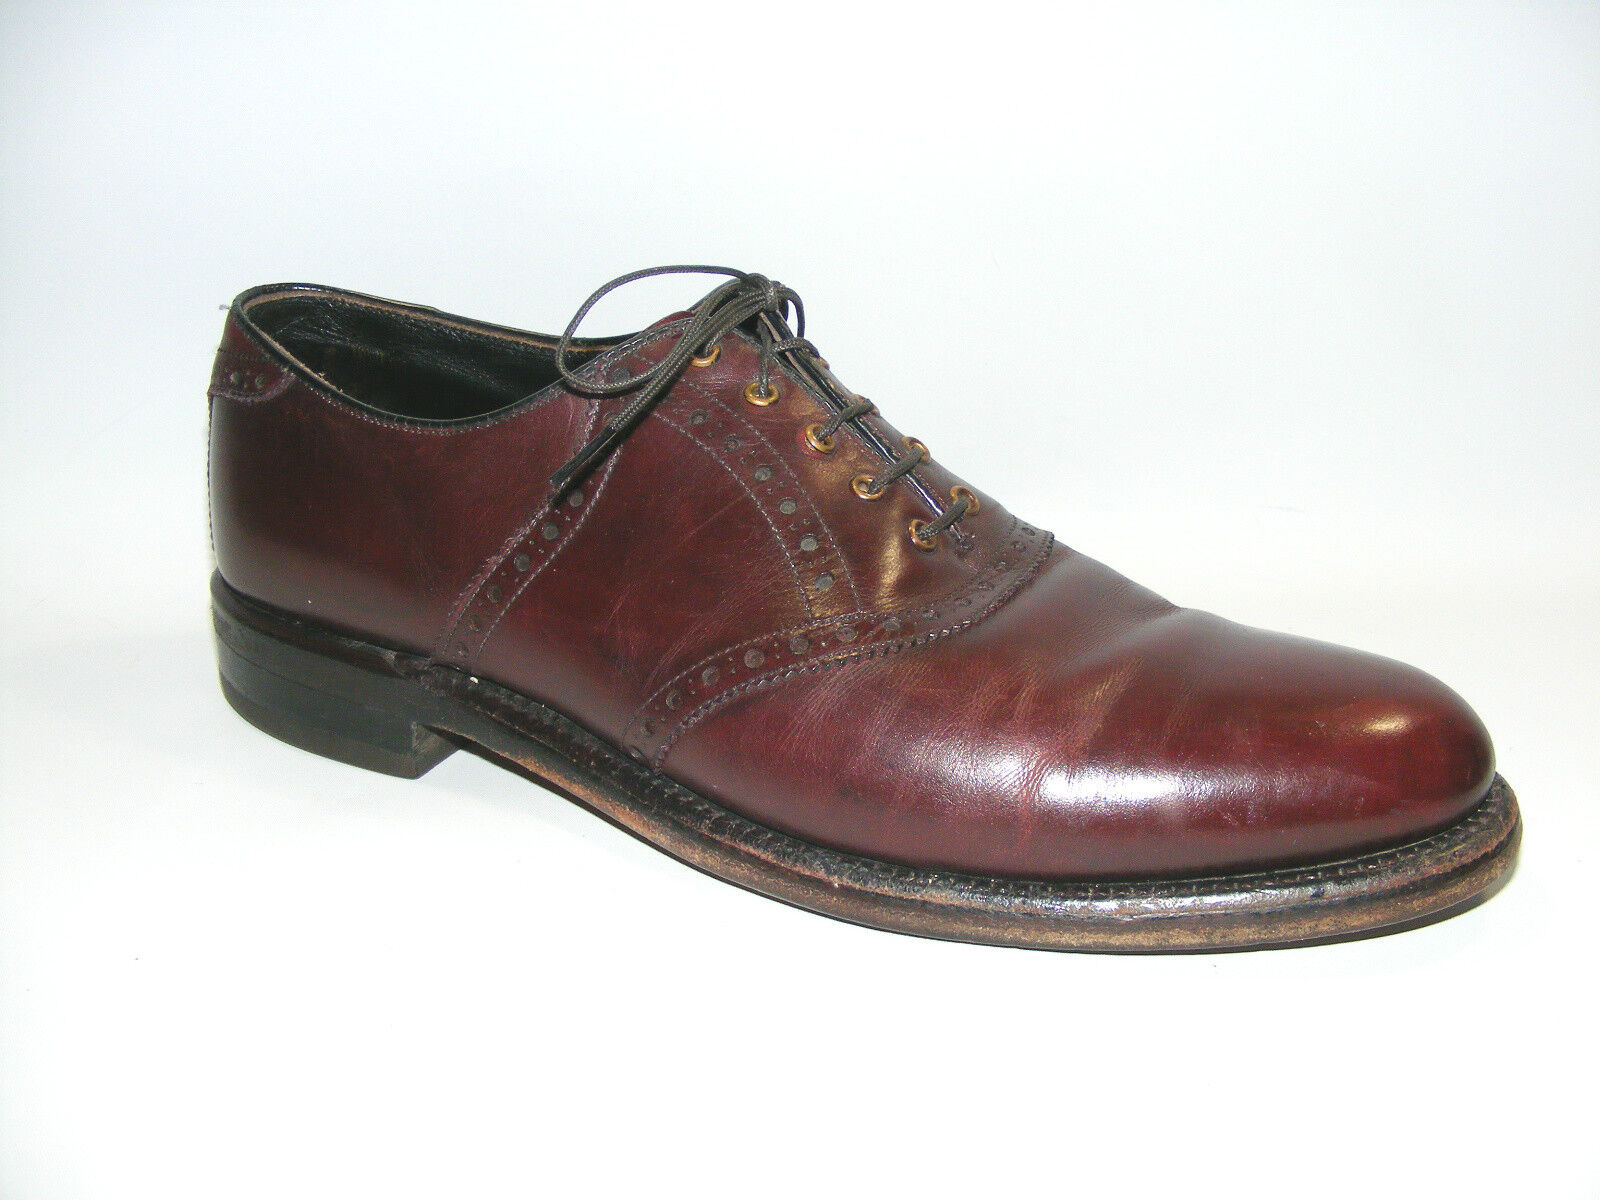 Footjoy Men's Burgundy Wine 10 AAA Classic Leather Oxford Dress 61861 shoes